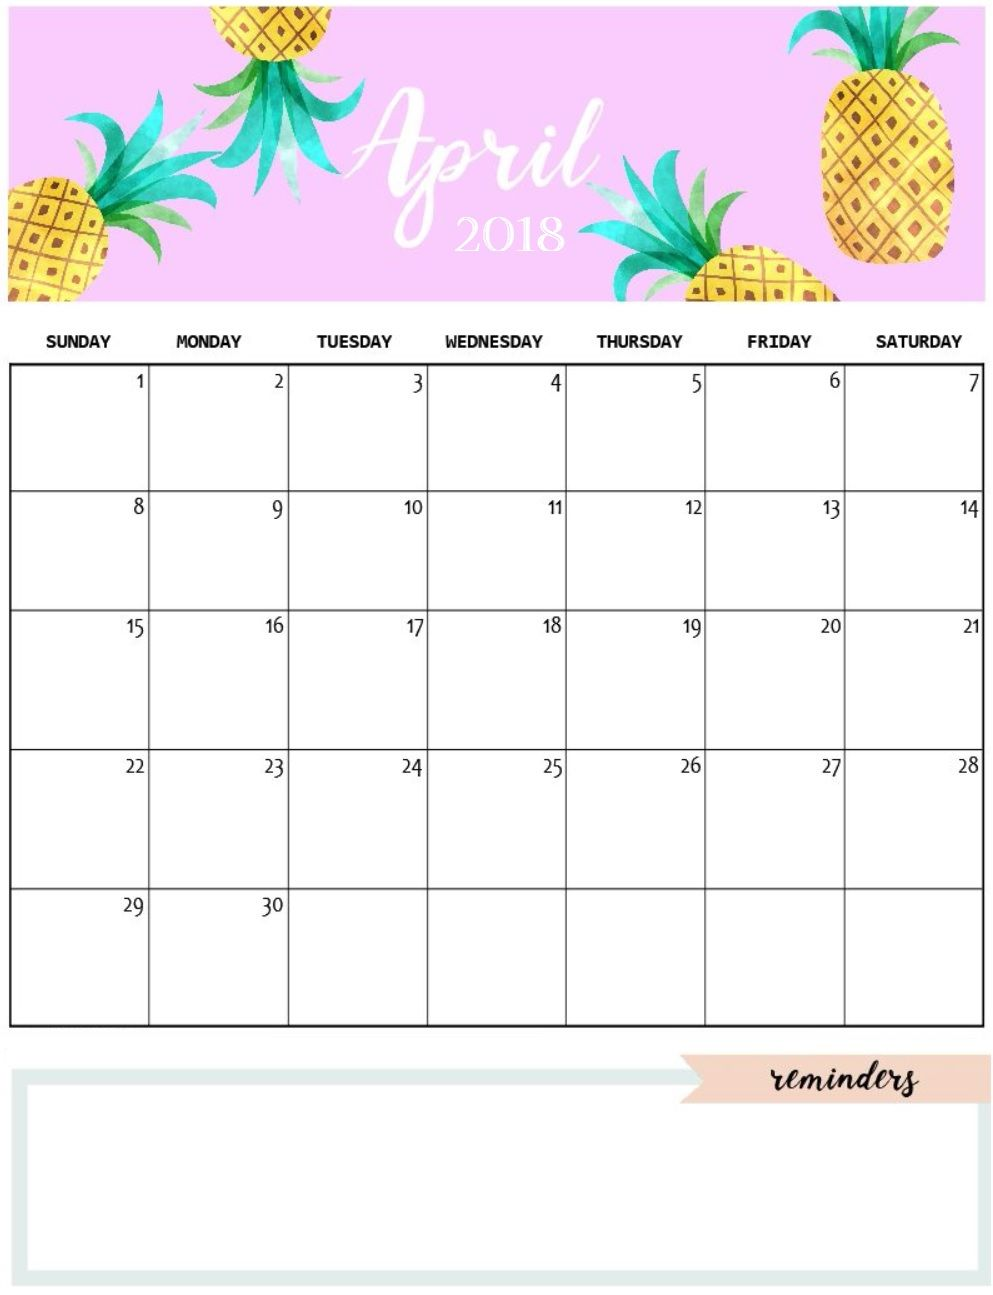 image relating to Cute Calendars known as Lovable April 2018 Calendar Template calendars Lovely